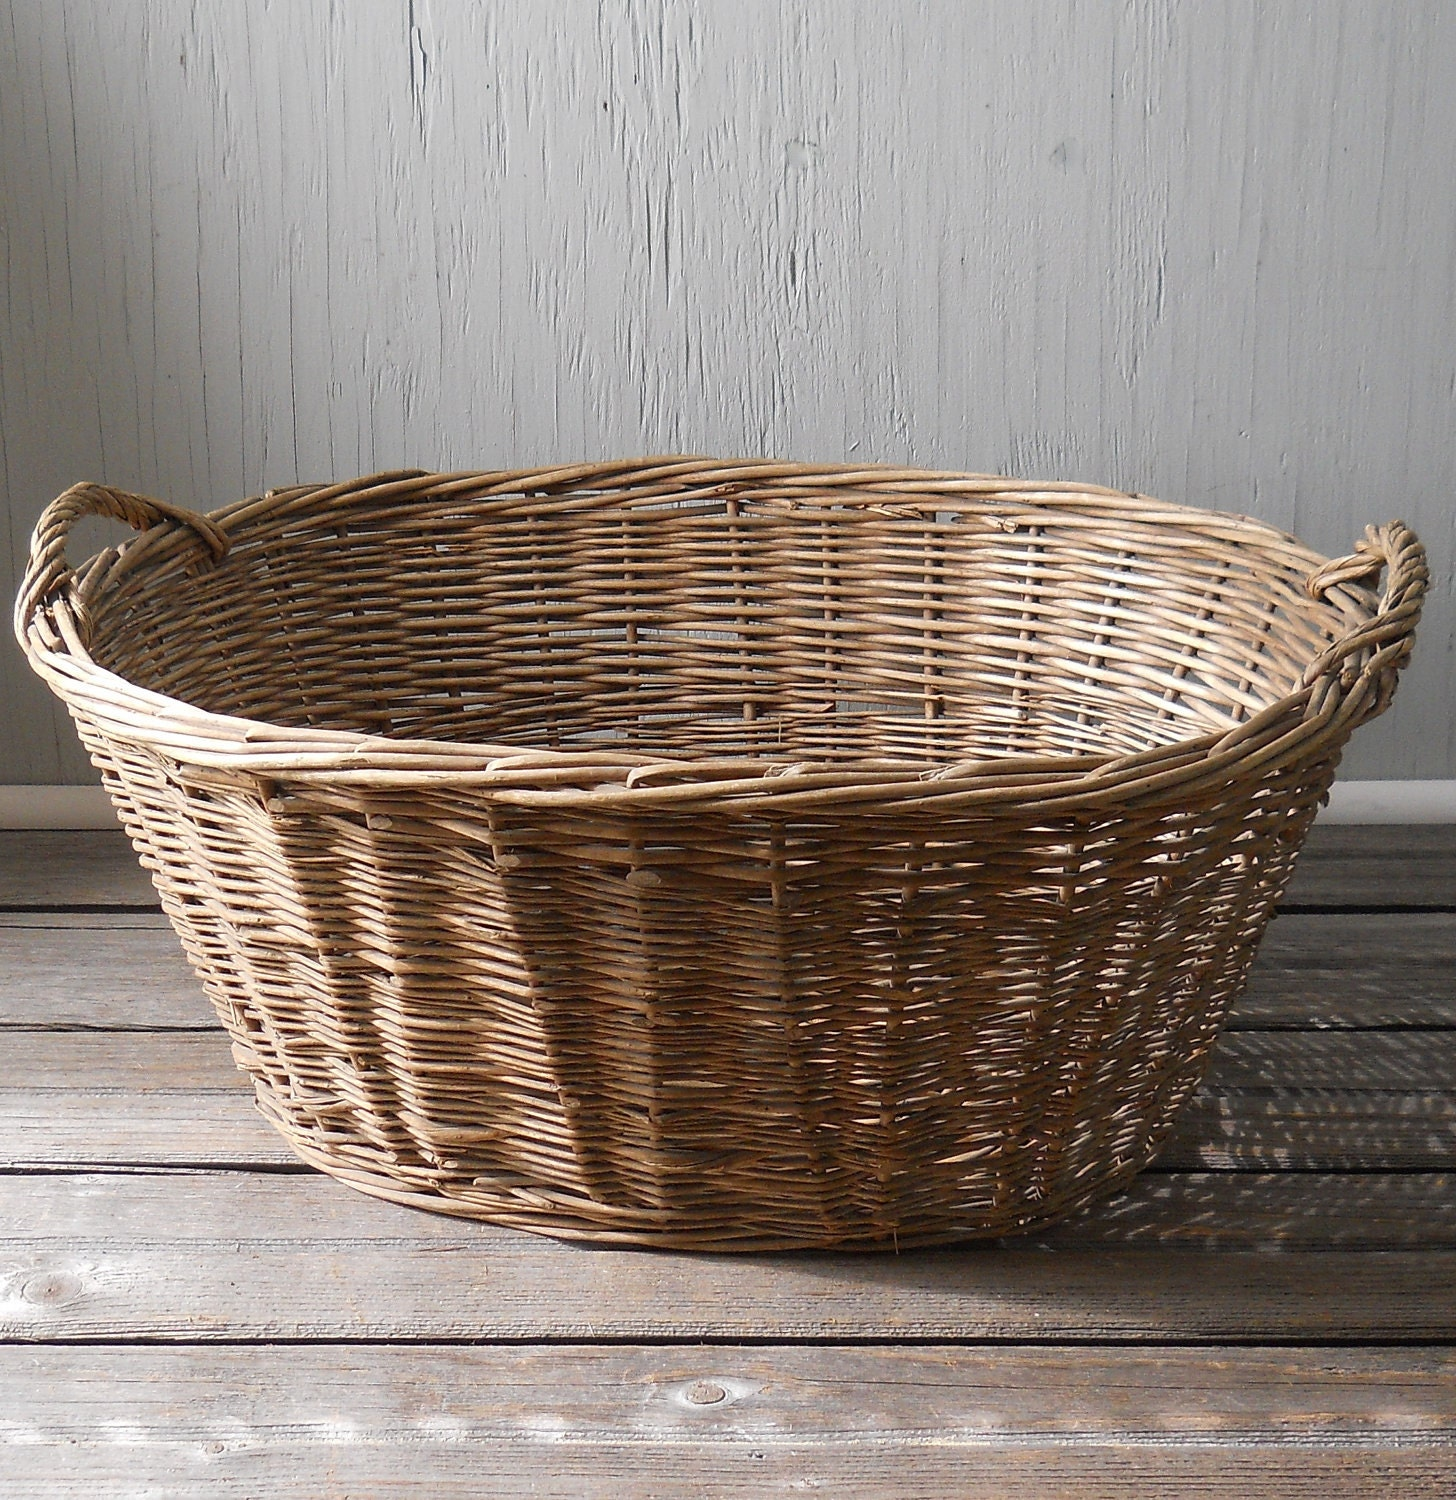 Vintage Wicker Laundry Basket Large Oval No 1 By Lisabretrostyle2